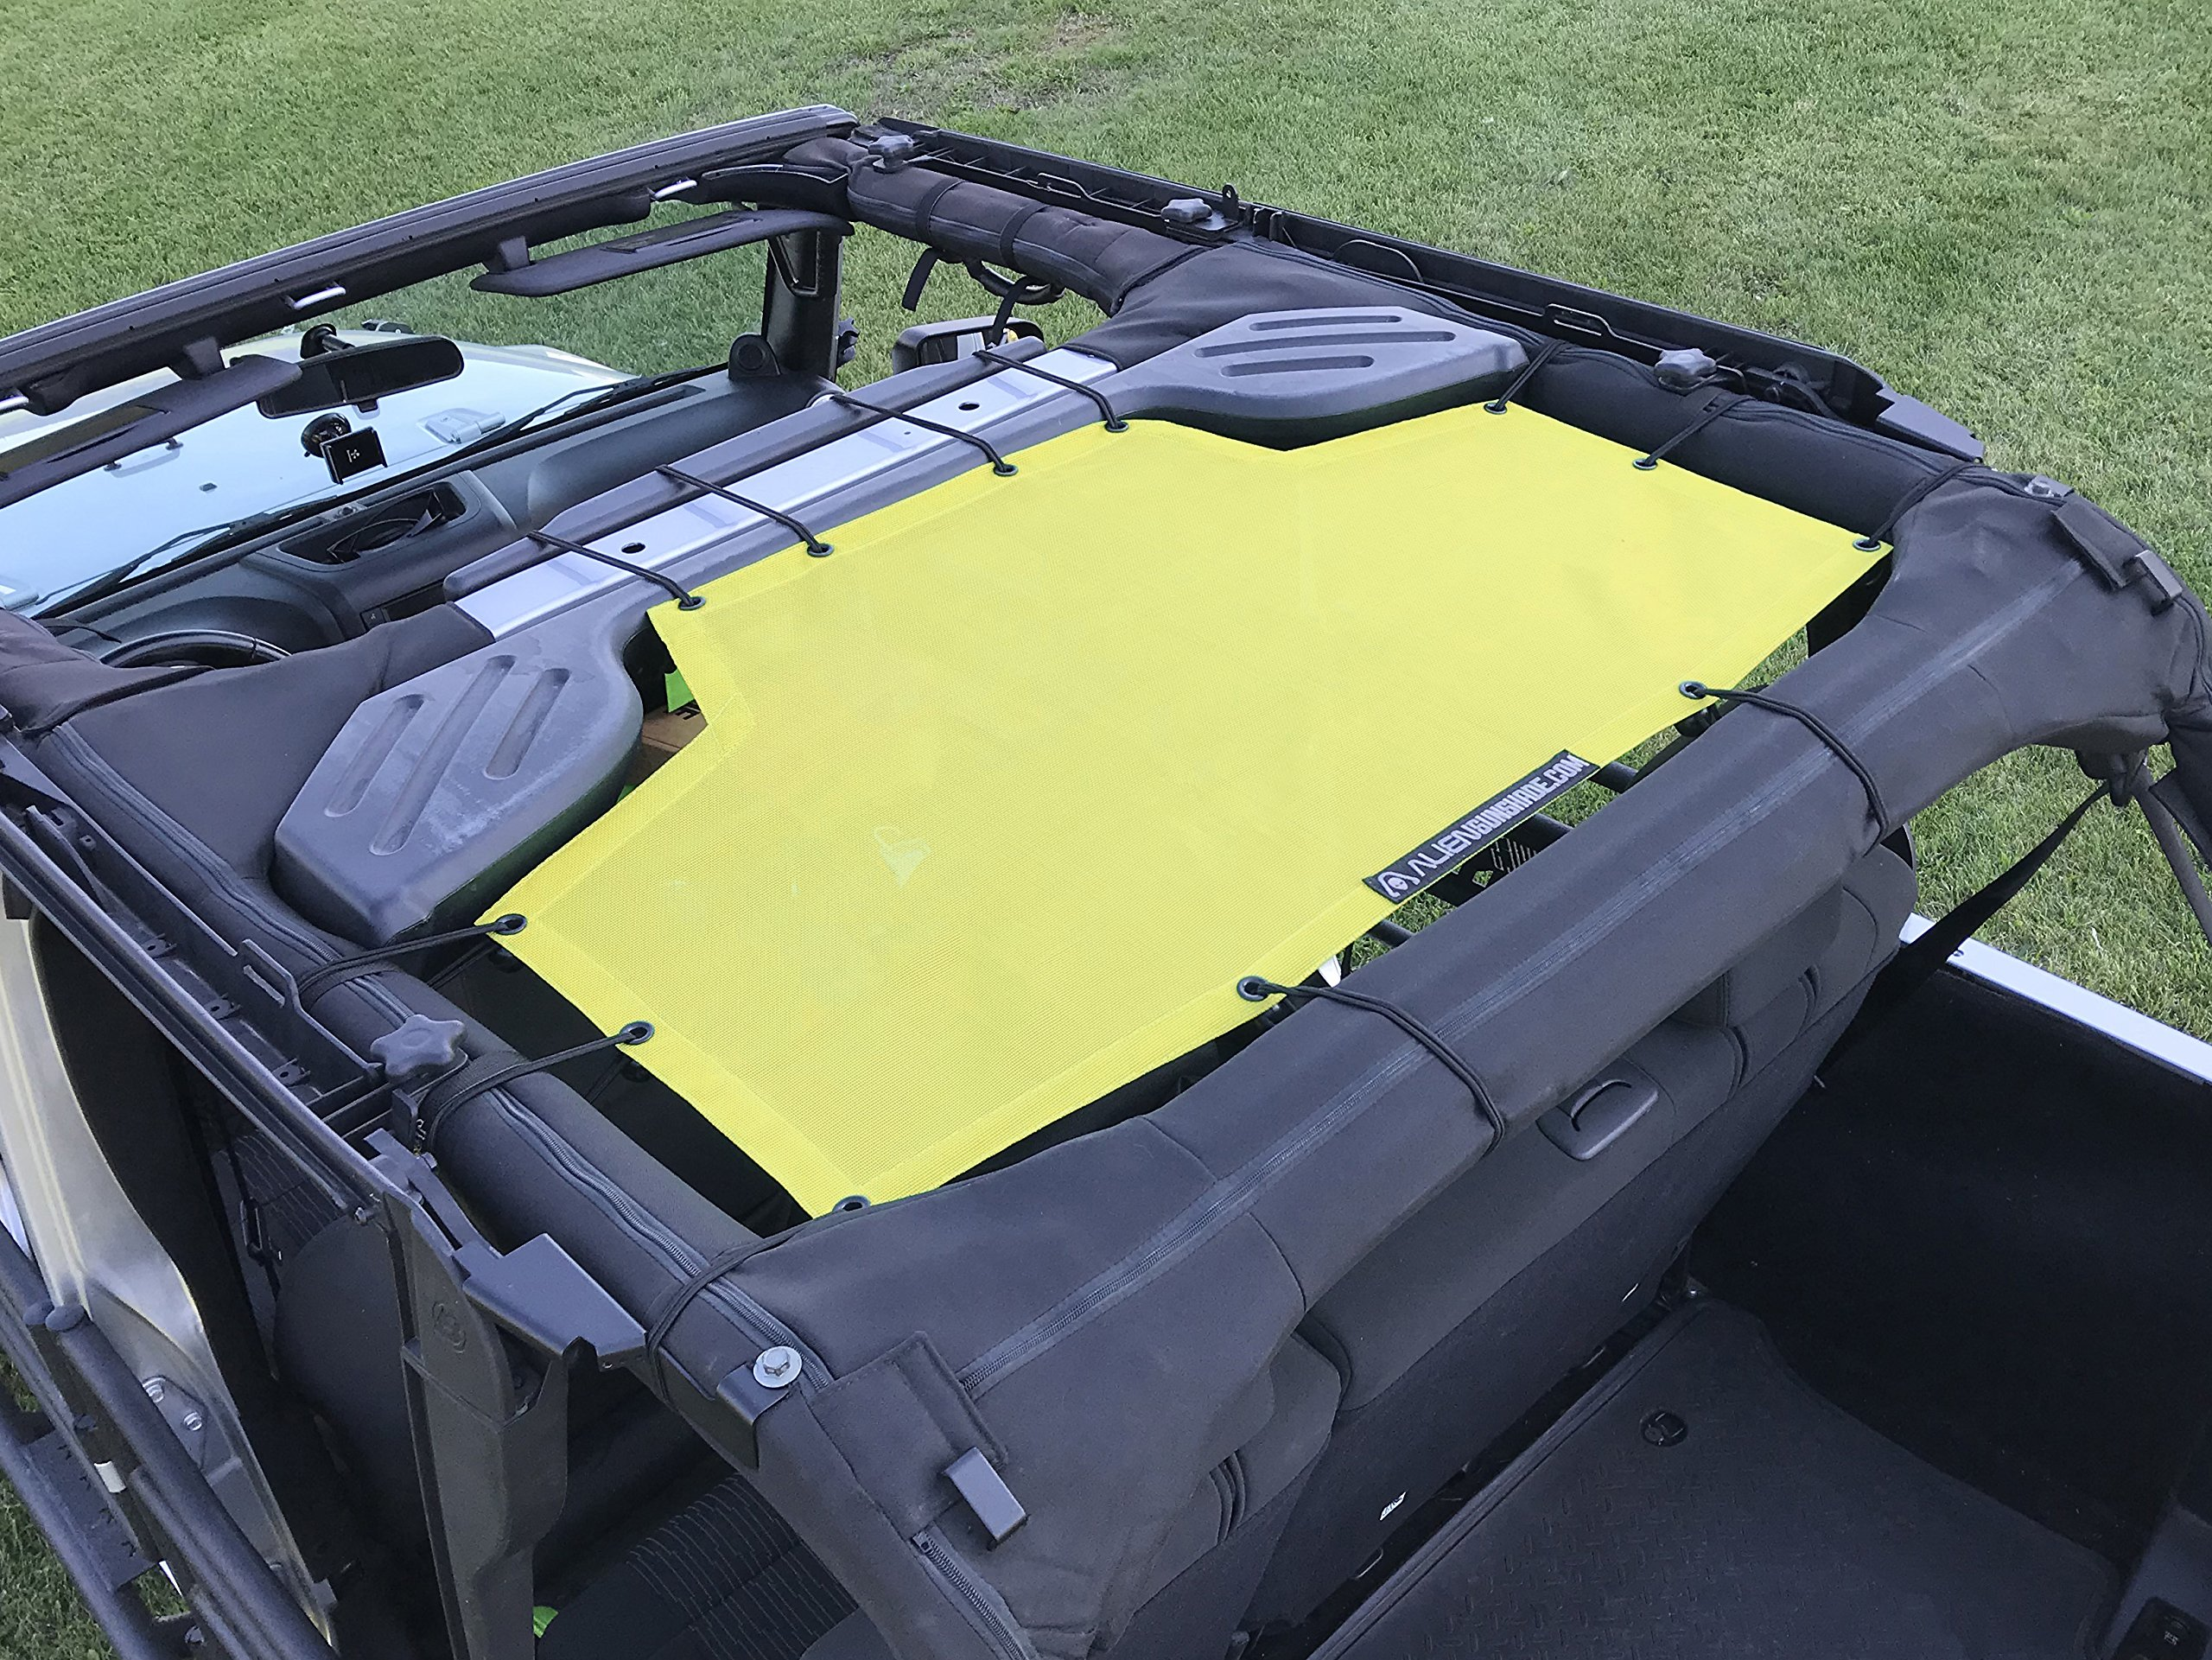 ALIEN SUNSHADE Jeep Wrangler Mesh Shade Top Cover with 10 Year Warranty Provides UV Protection for Rear Passengers 4-Door JKU (2007-2017) (Yellow)